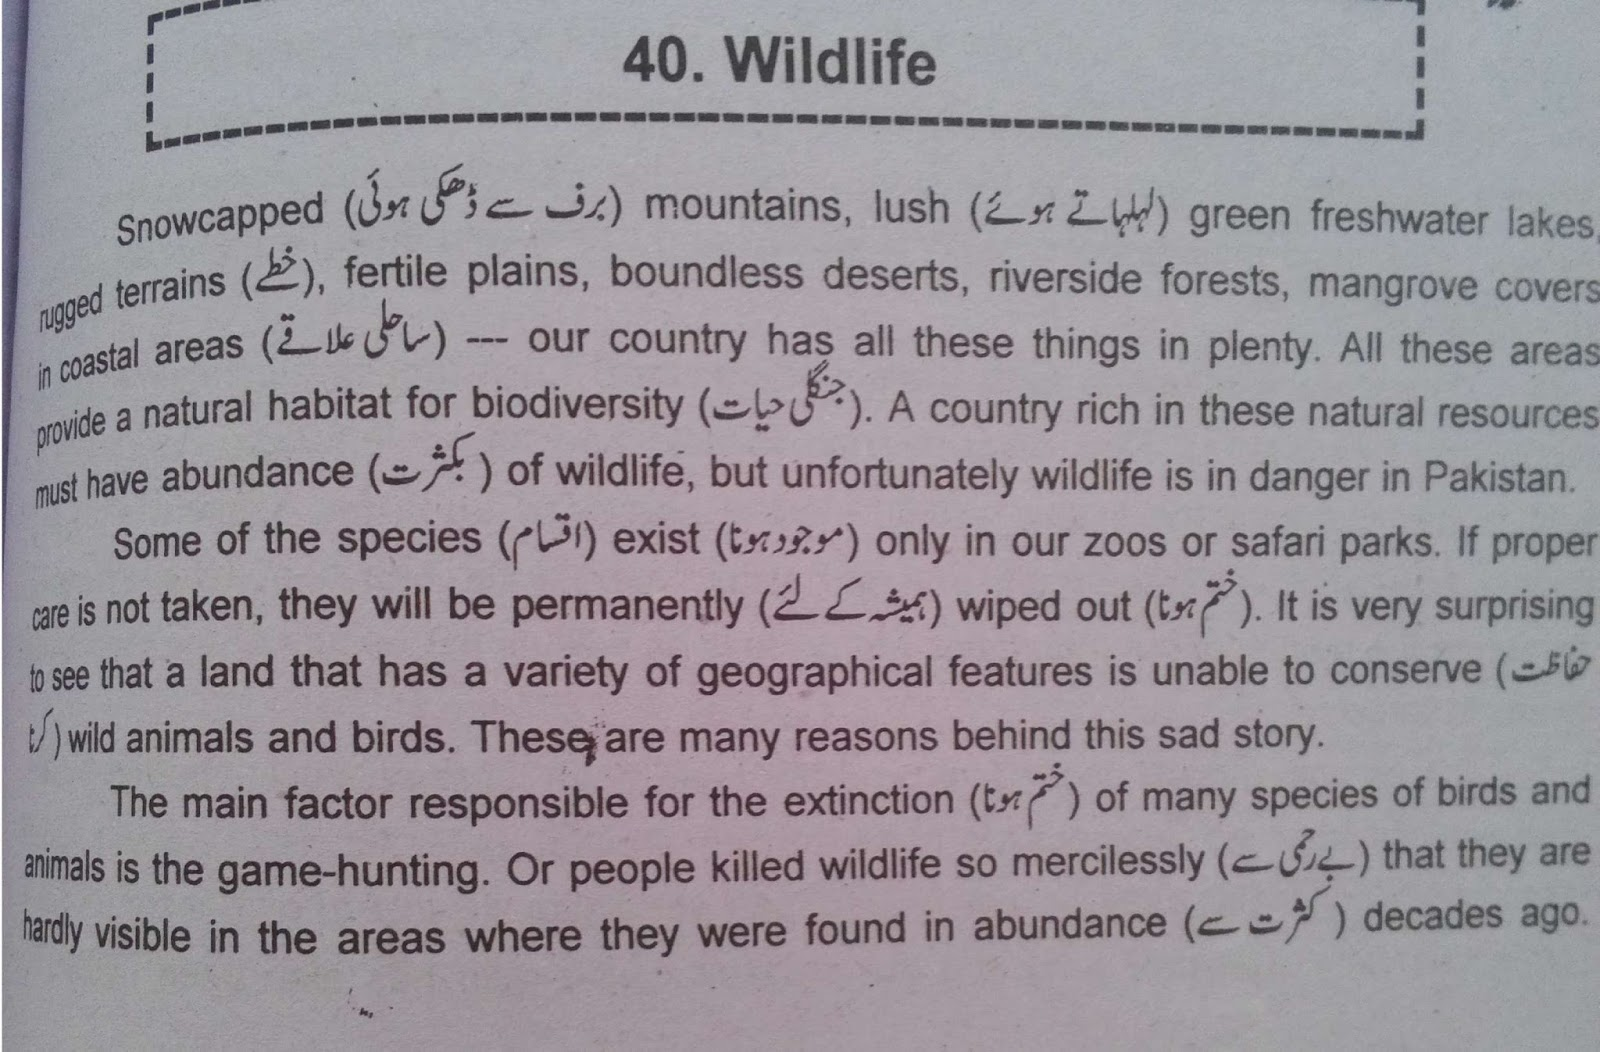 wild life essay in english for primary to higher classes 2017 essay on save wildlife 150 words essay on wildlife and its importance protection of